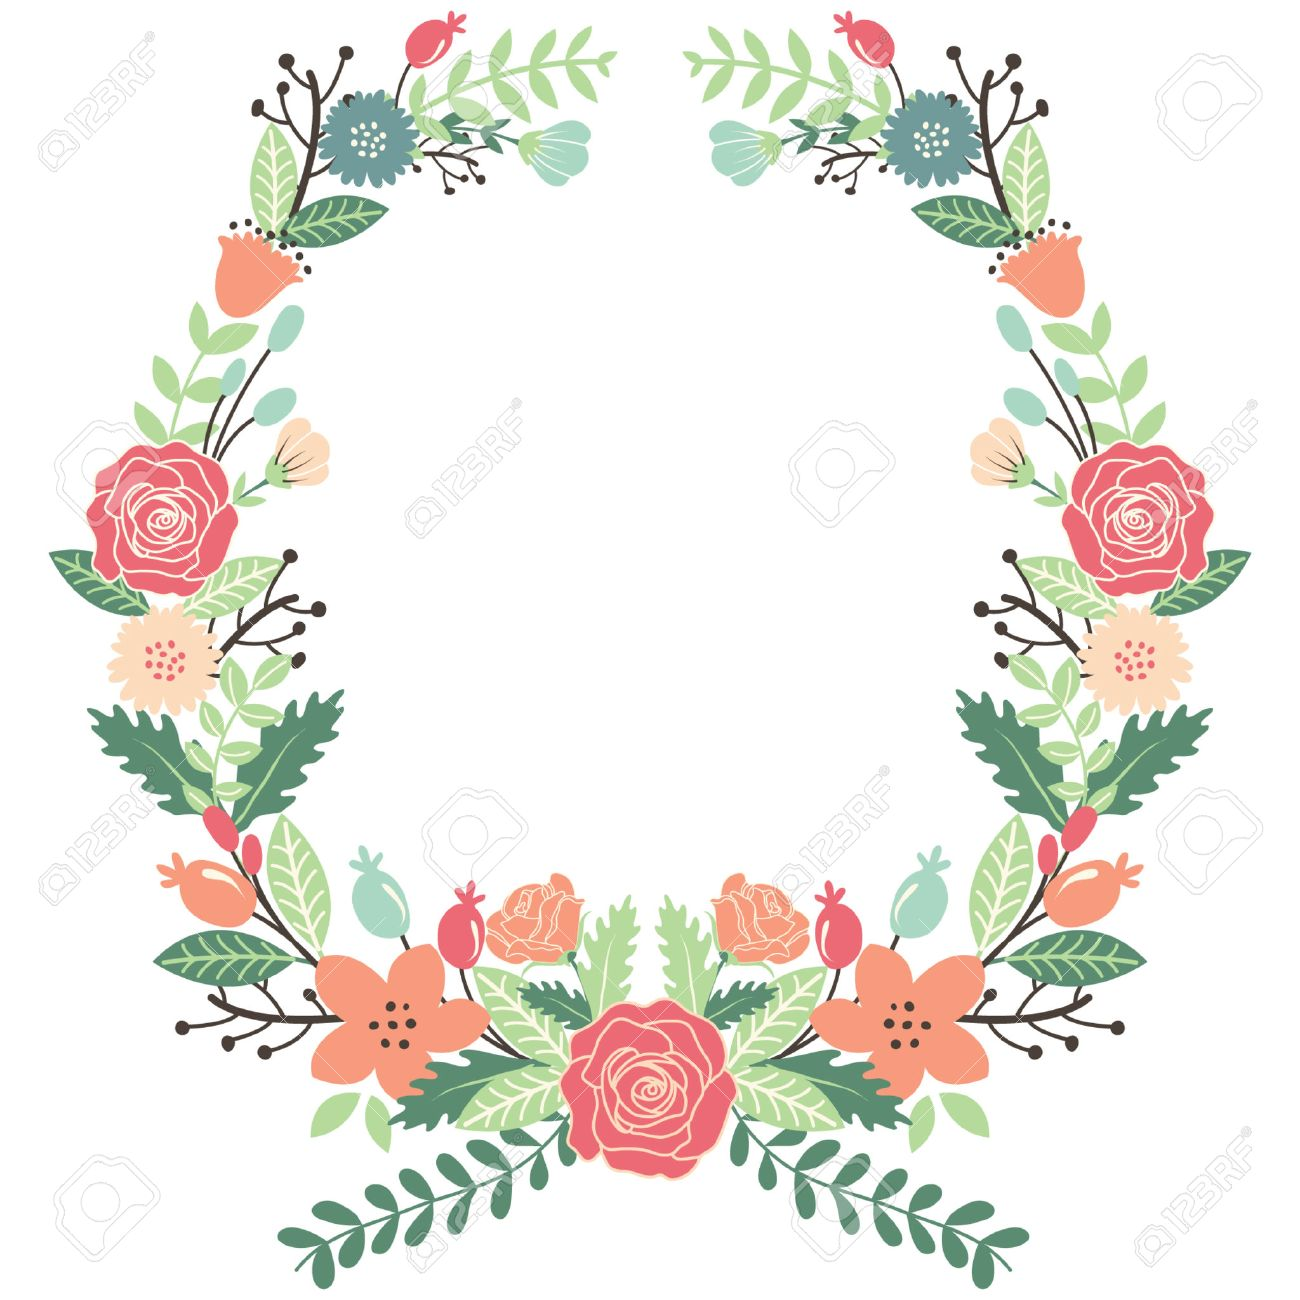 Vintage Flowers Wreath Royalty Free Cliparts Vectors And Stock